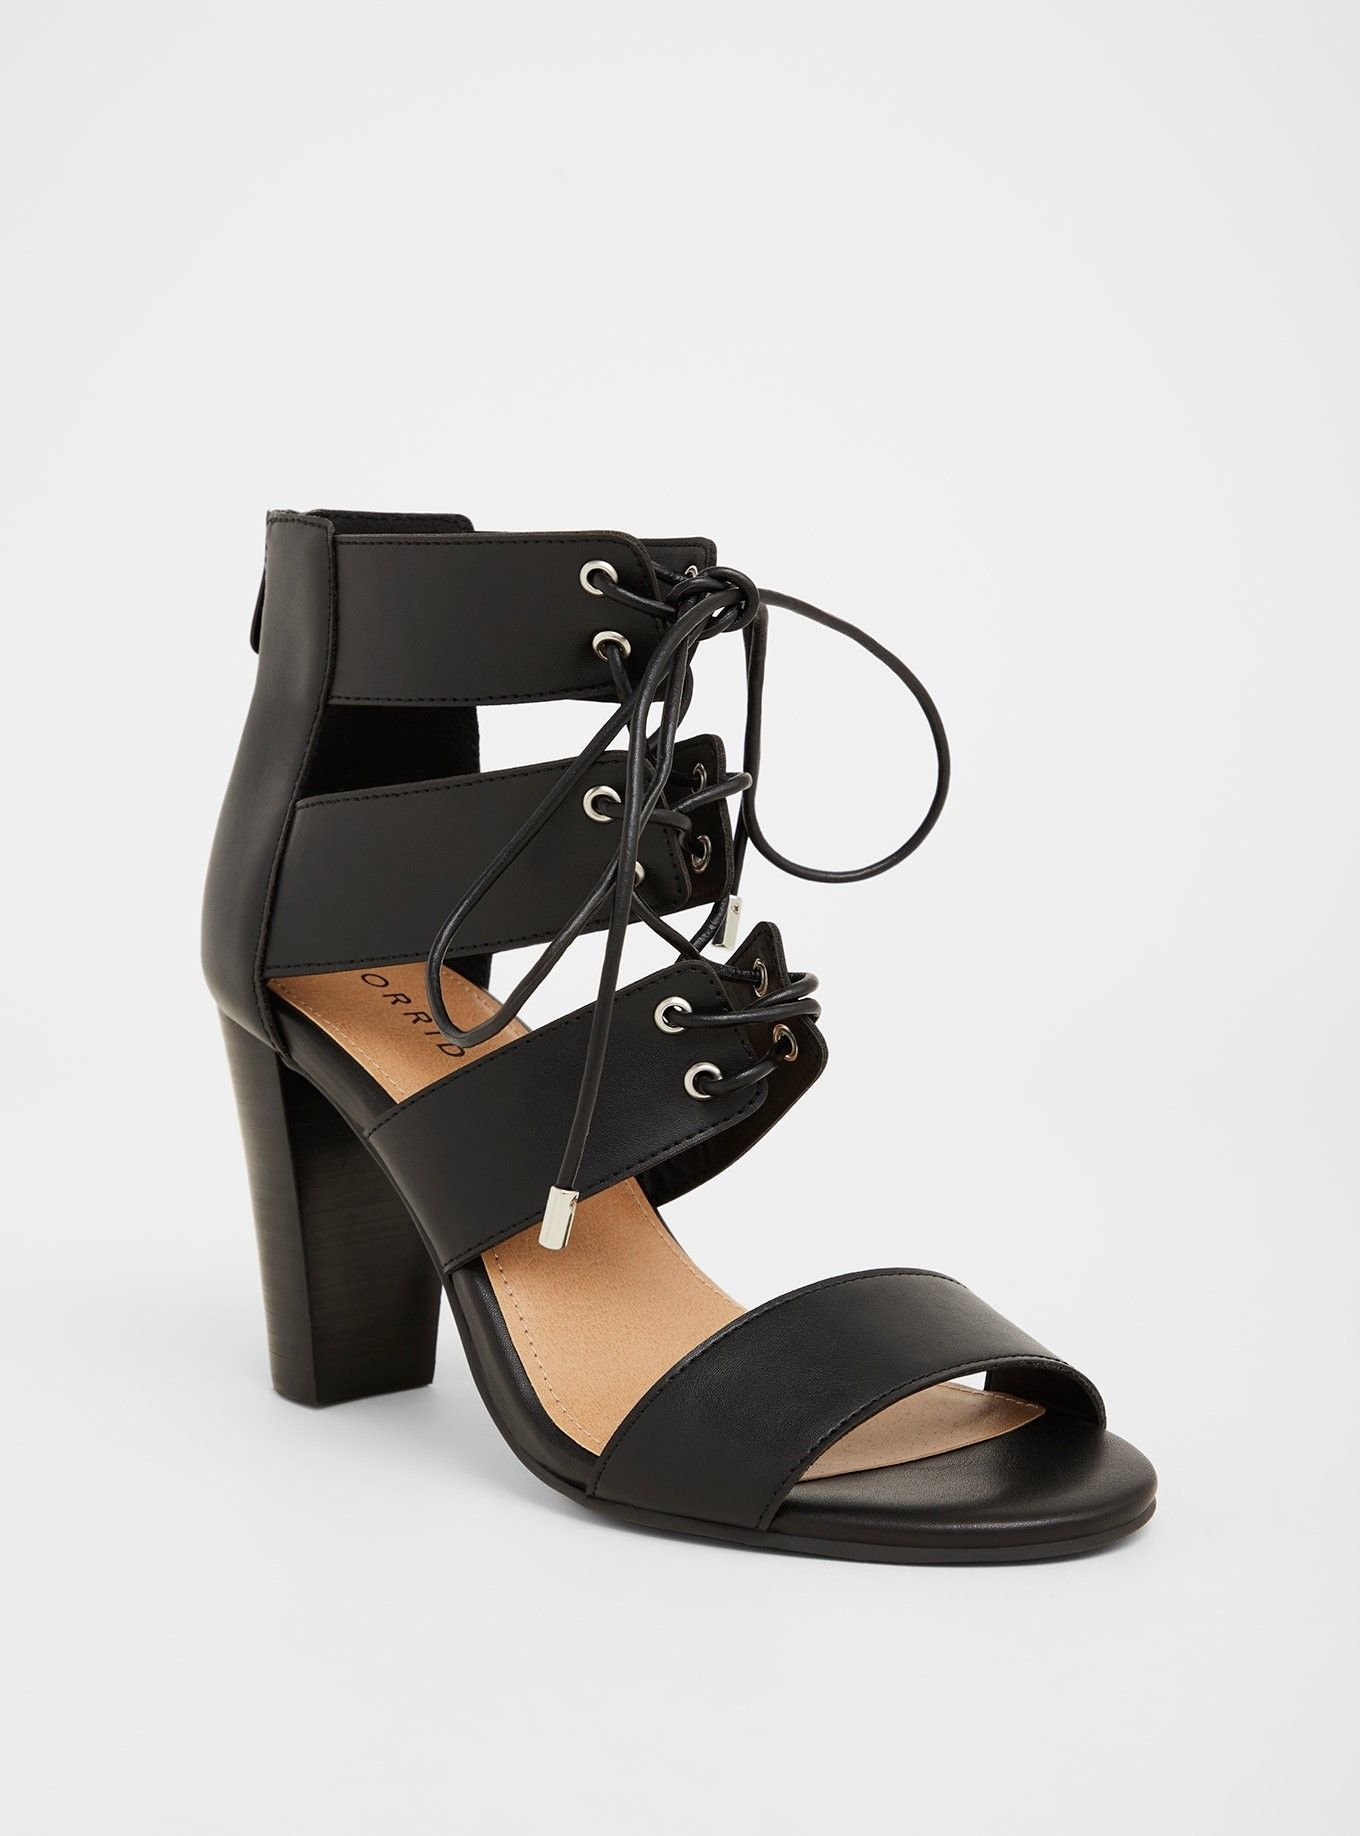 19755cb1b55e Black Cage Heel Sandal (Wide Width) - Cutout straps and lace-up ties add  edge to a buttery soft faux leather heel sandal.